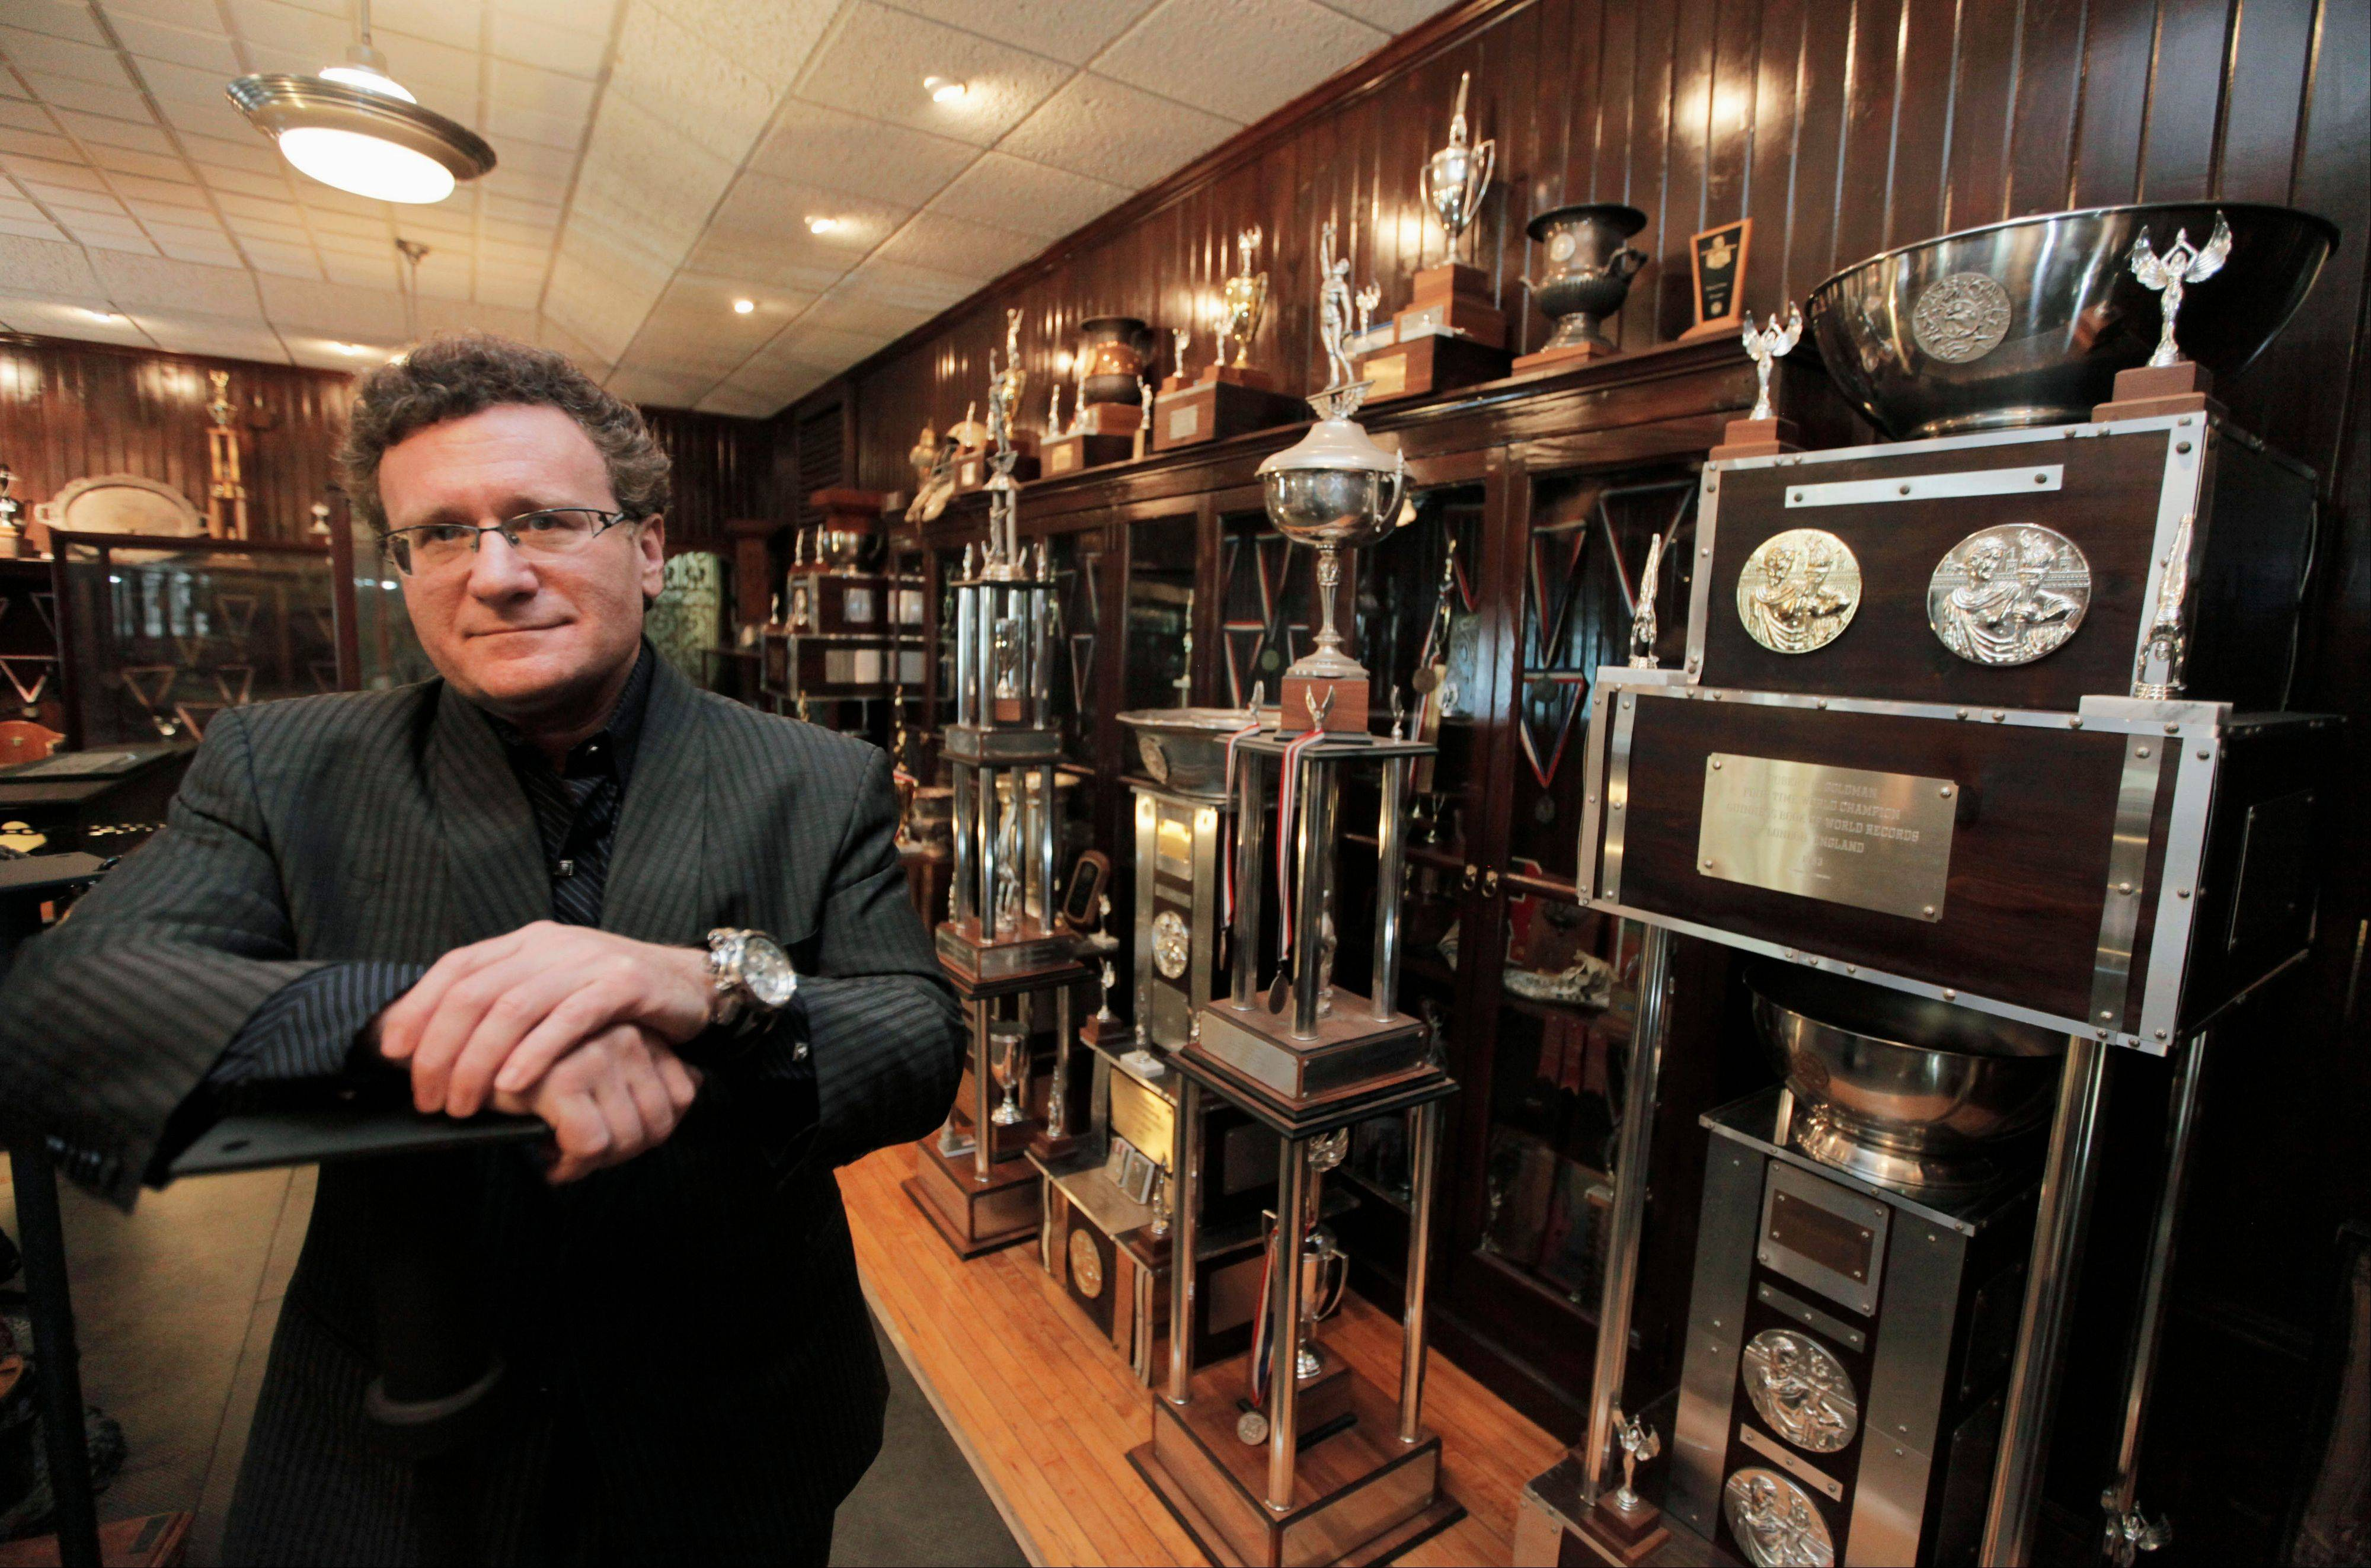 "Dr. Robert Goldman, one of the co-founders of the American Academy of Anti-Aging Medicine, is photographed in his trophy room in Chicago with hardware from 20 Guinness World Records for strength and endurance. ""People should be healthy and strong well into 100 to 120 years of age,"" Goldman says in a biographical video. ""That's what's really exciting - to live in a time period when the impossible is truly possible."""